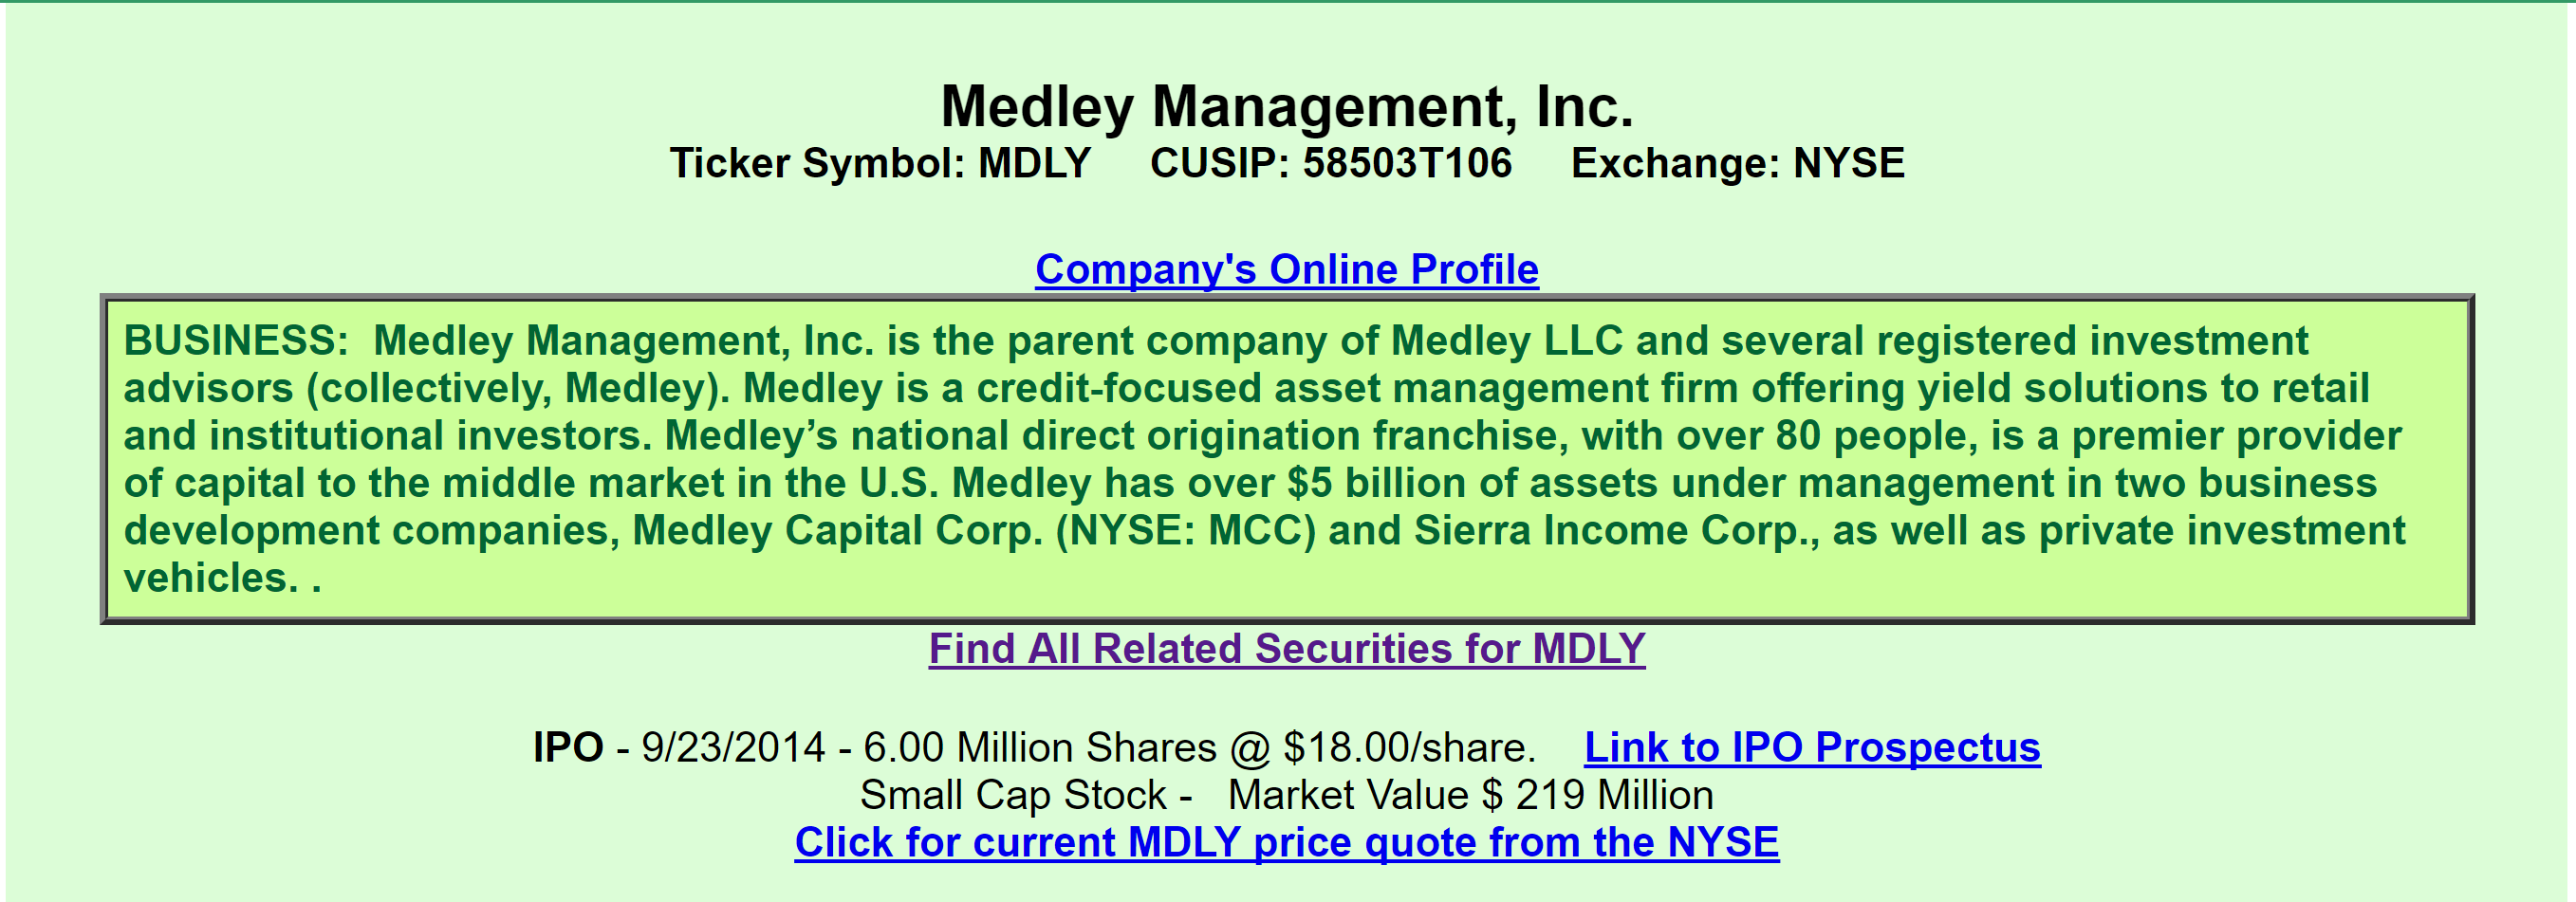 Medley management a view from the perspective of a preferred a quick review informs us that mdly is a credit focused asset management firm that also provides capital to middle market companies biocorpaavc Gallery